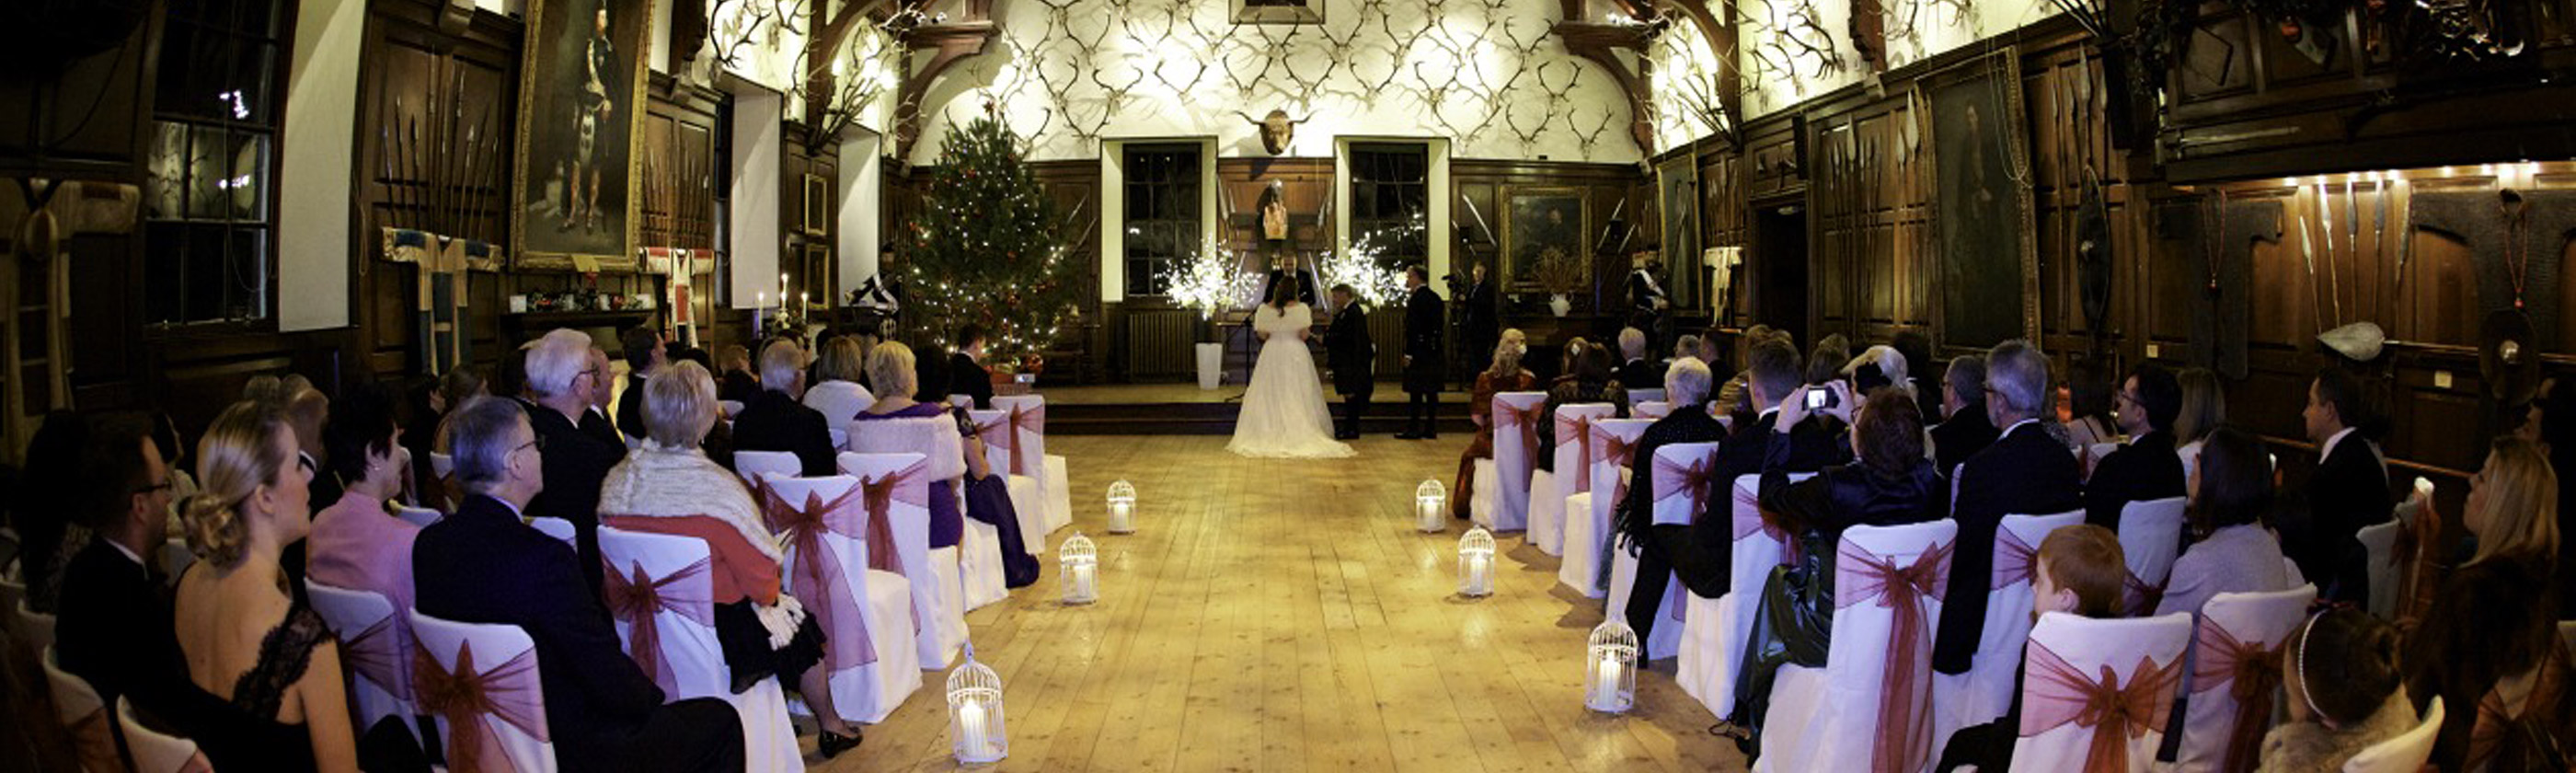 Photo of a wedding ceremony taking place in one of the grand wood paneled halls in Blair Castle